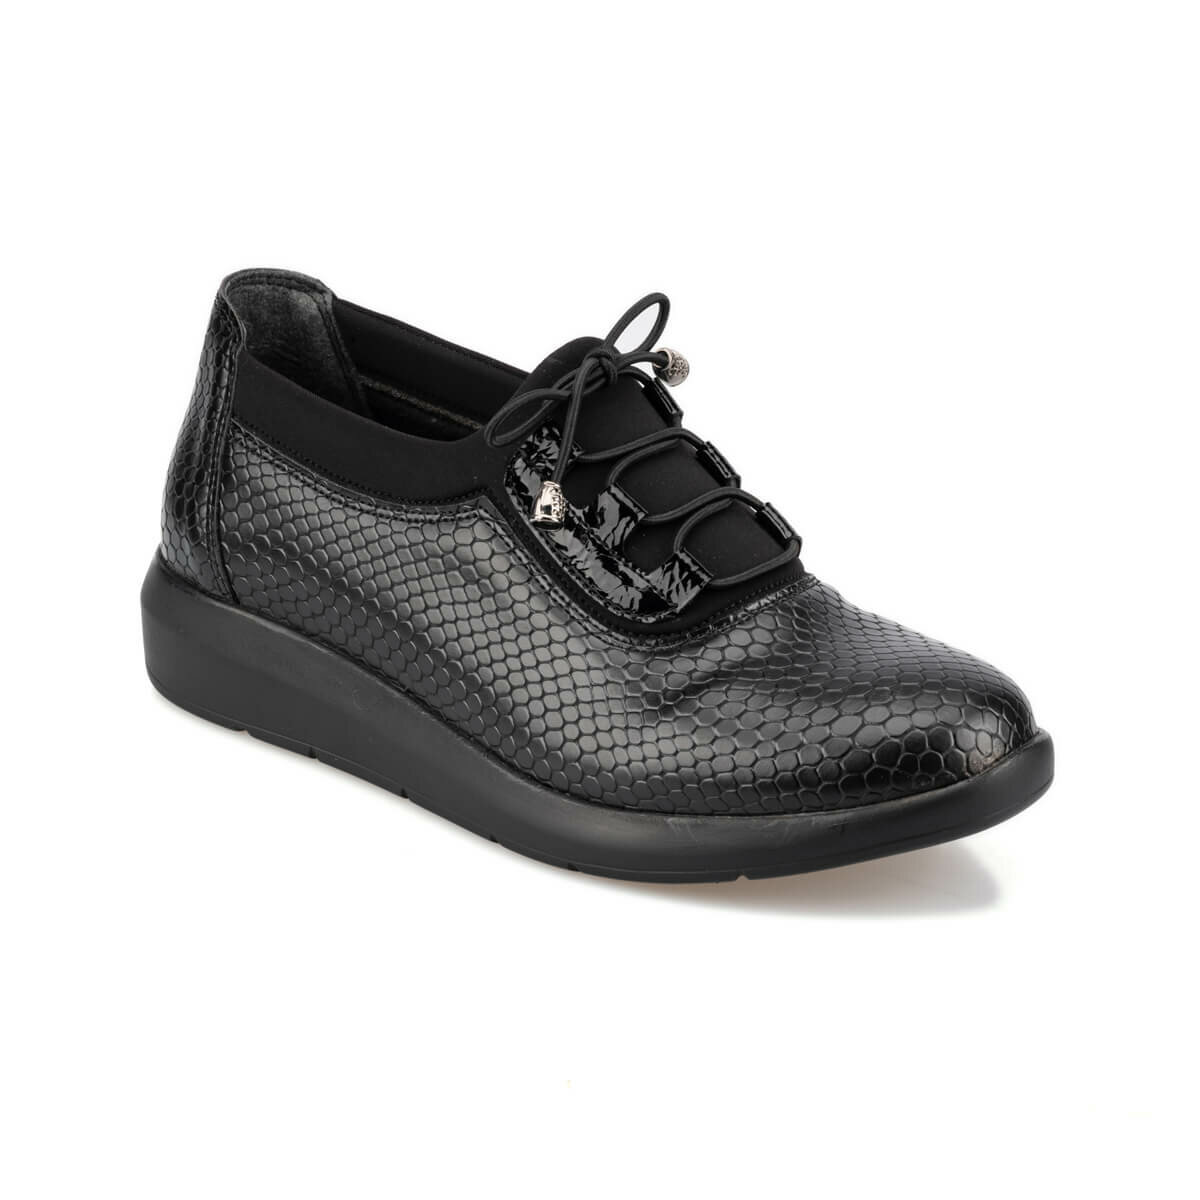 FLO 92.151054.Z Black Women 'S Sneaker Shoes Polaris